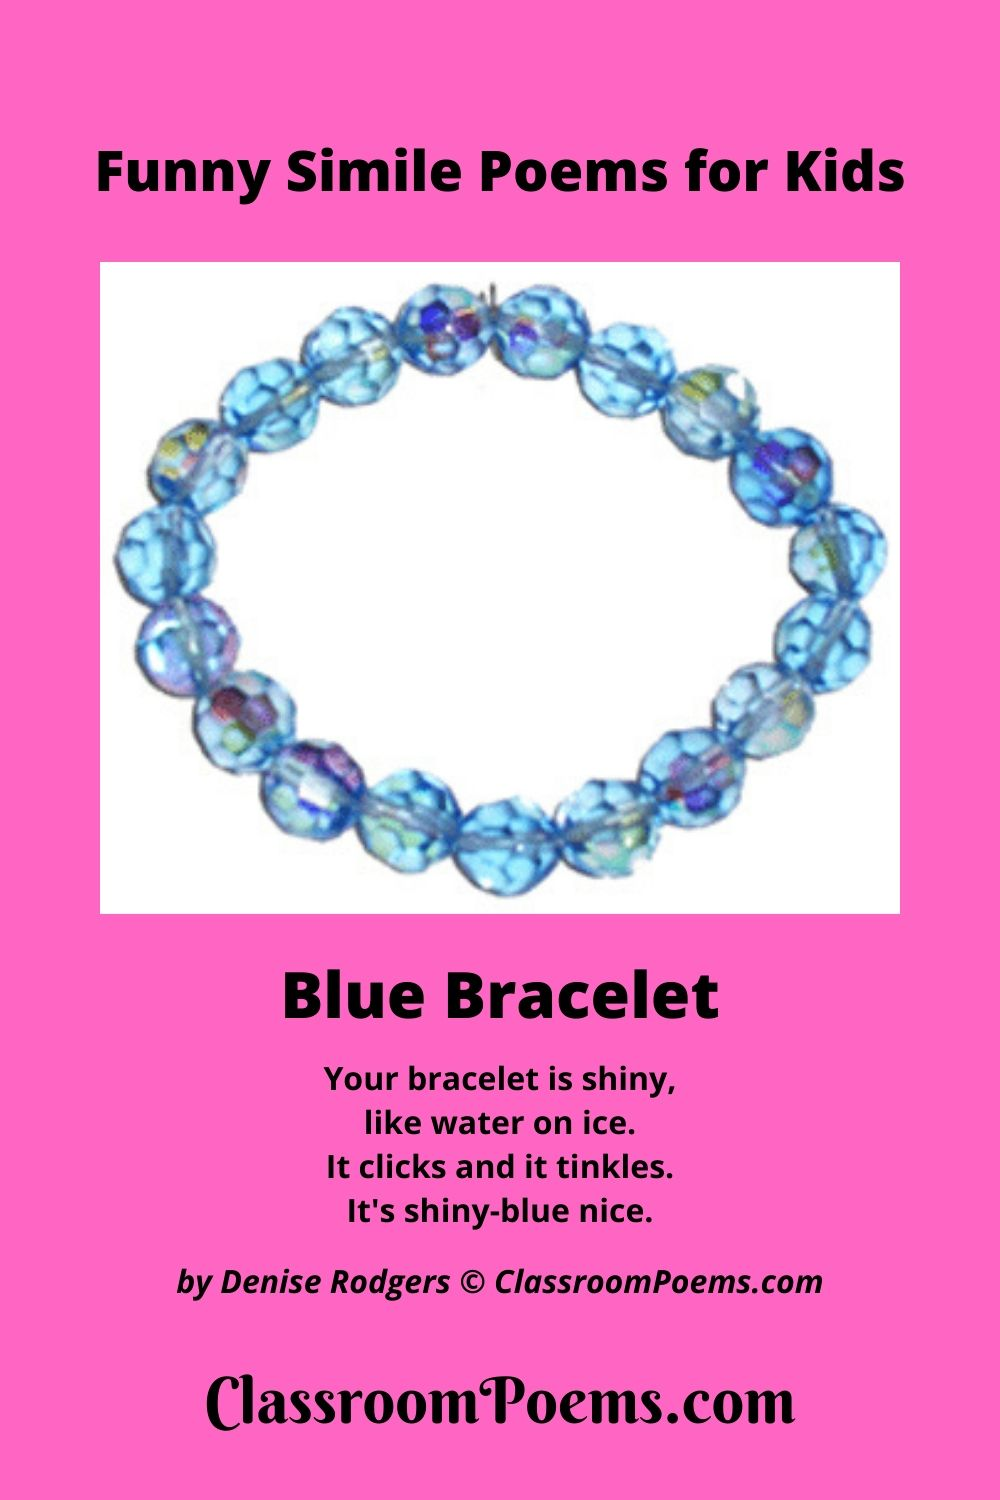 Blue bracelet simile poem by Denise Rodgers on ClassroomPoems.com..